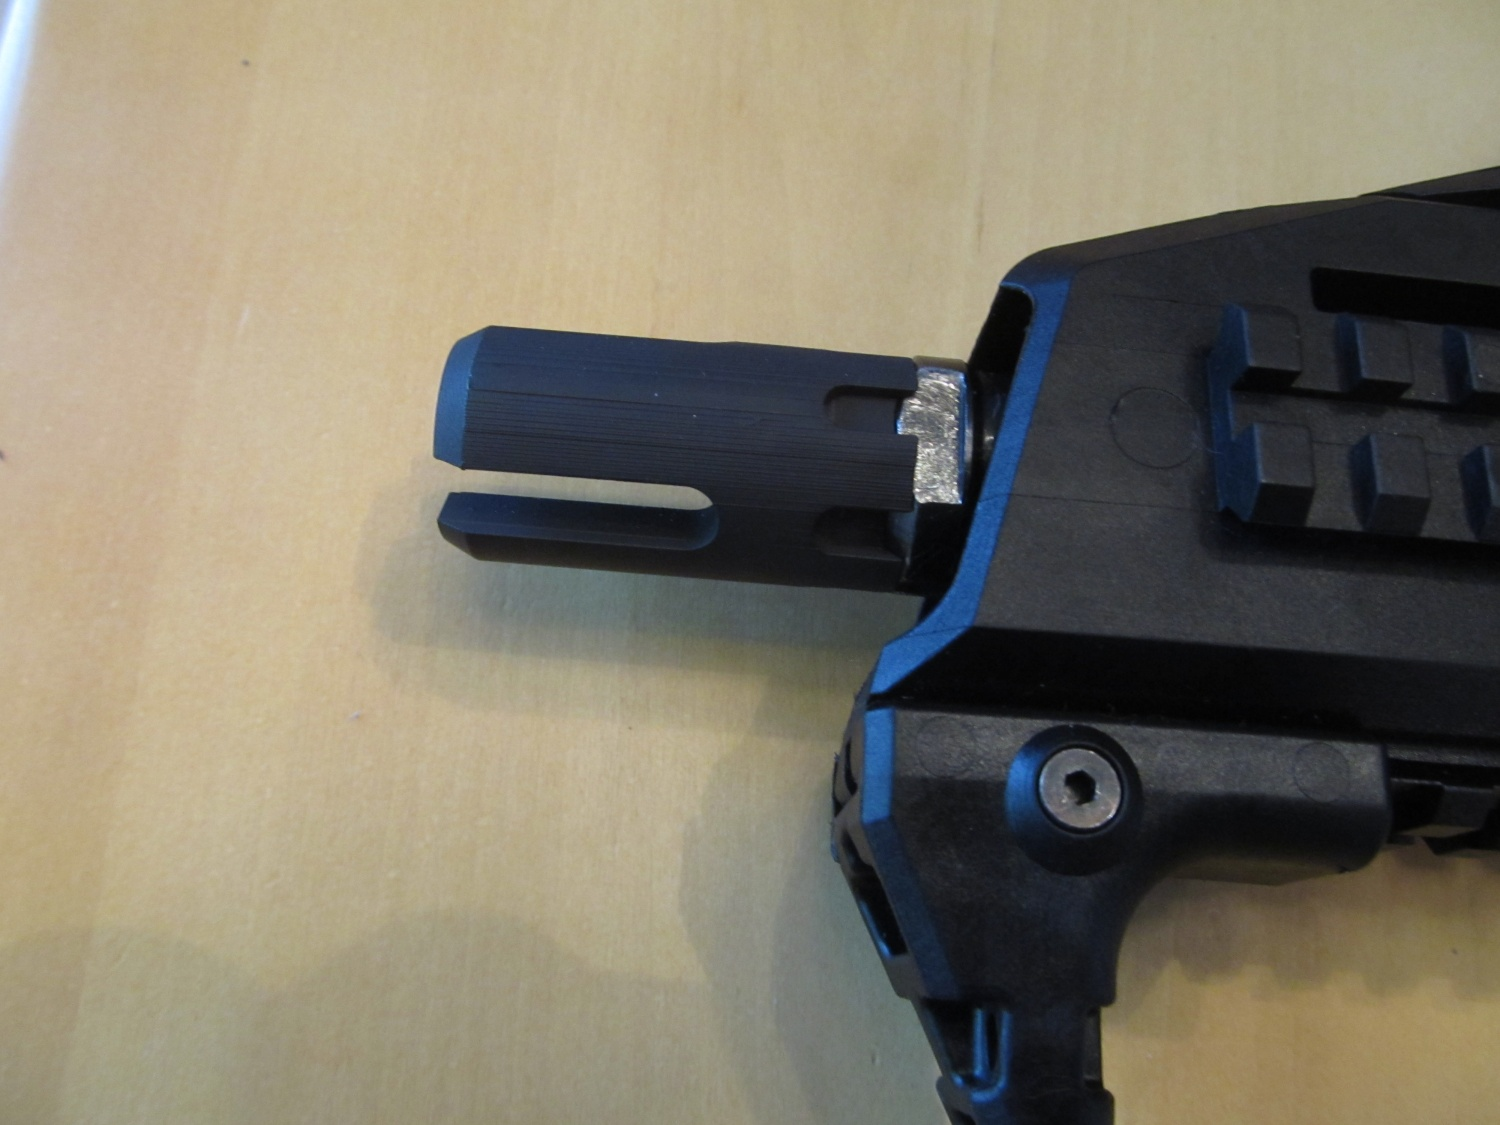 A rough rapid prototype of the suppressor adaptor and muzzle compensator that Manticore has come out with.